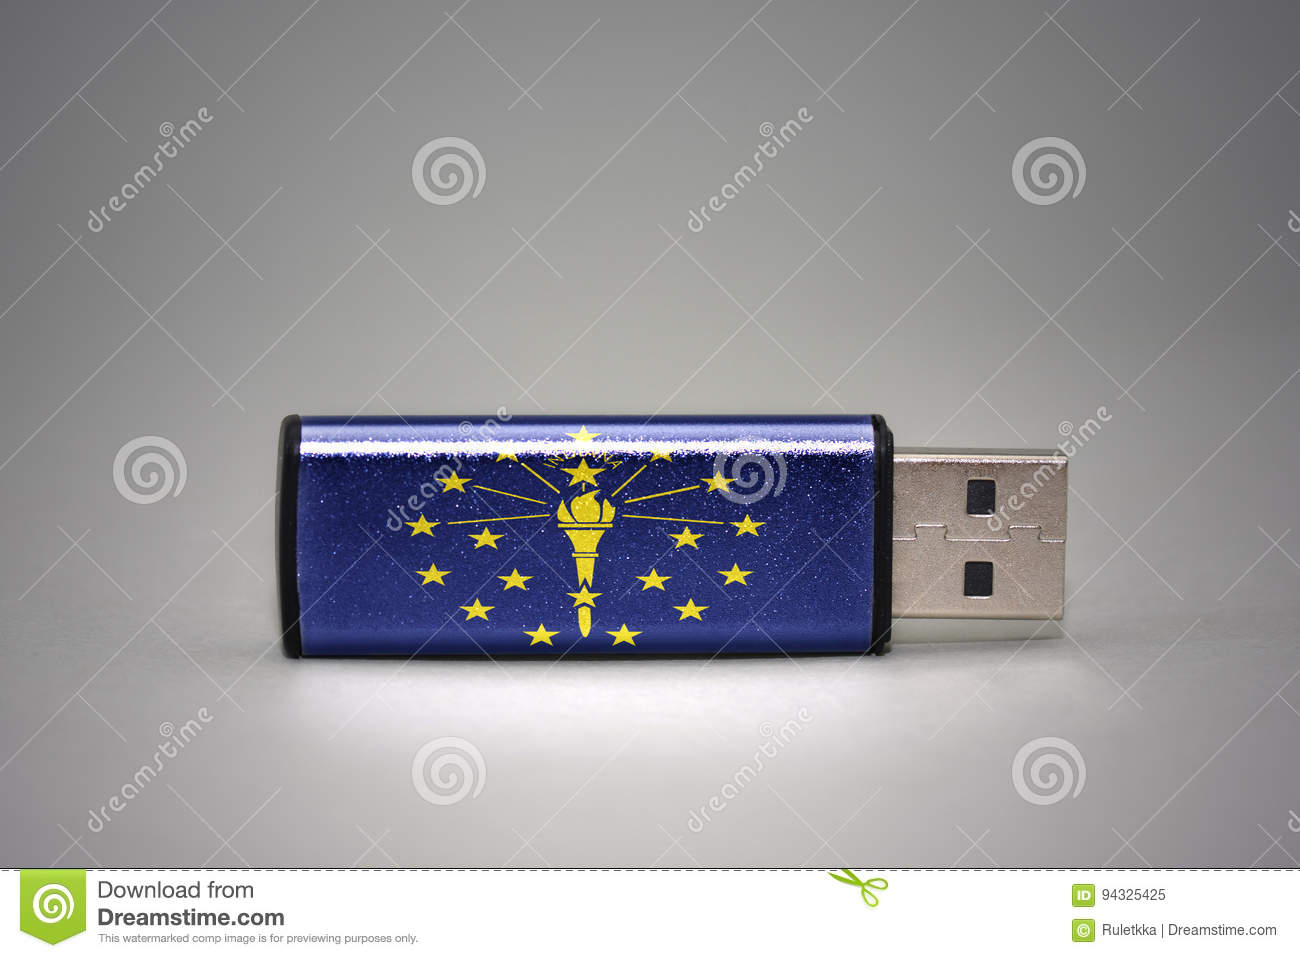 Usb flash drive with the indiana state flag on gray background.